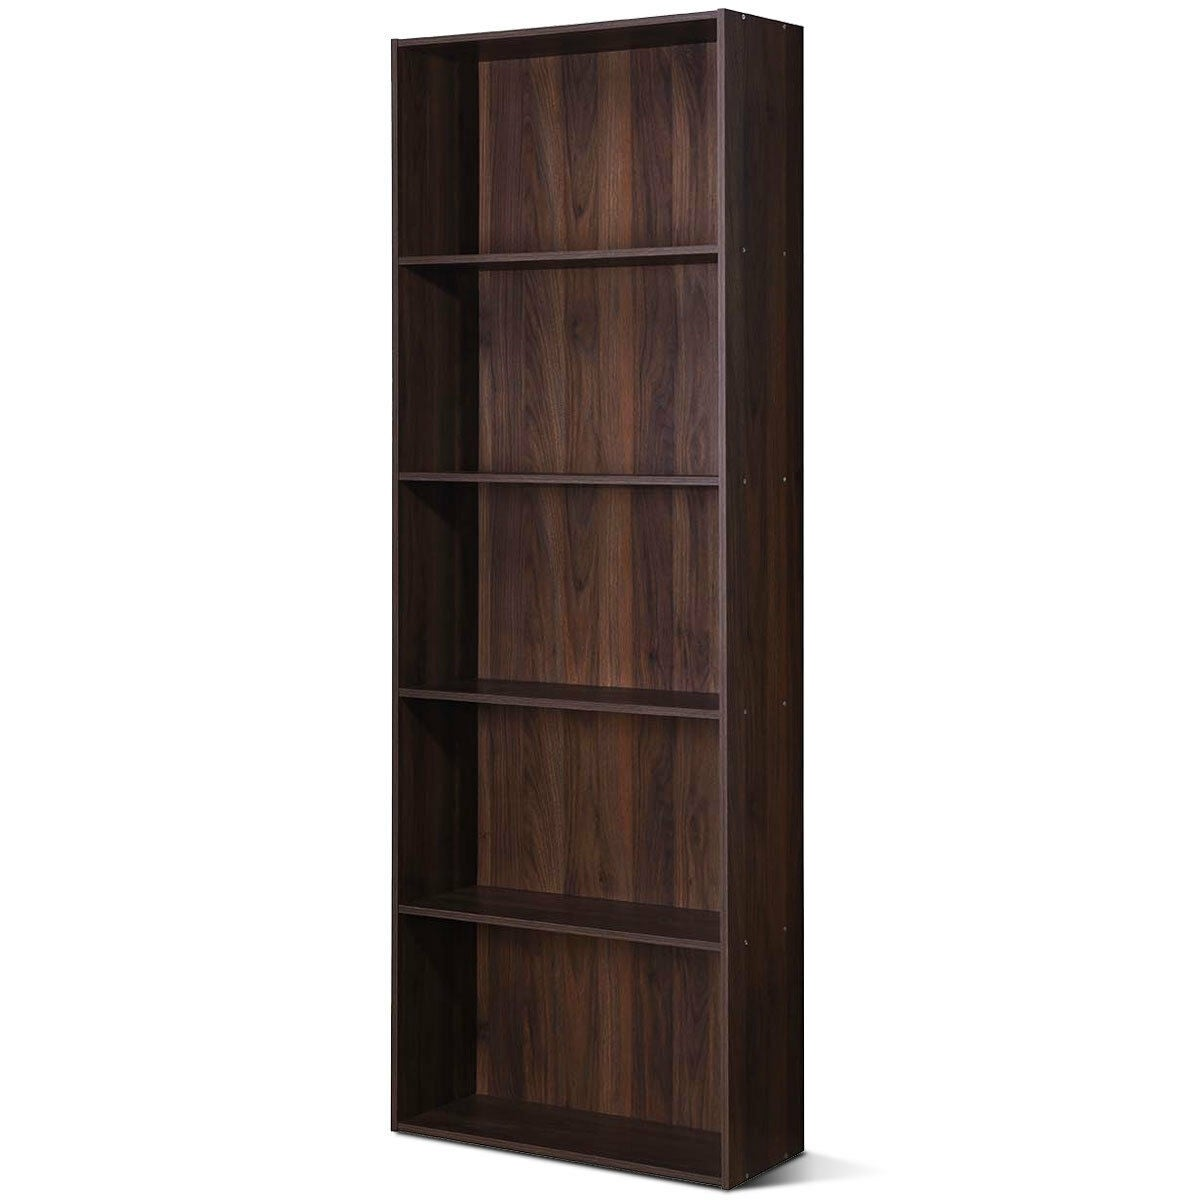 5 Shelf Storage Bookcase Modern Multi Functional Display Cabinet Furniture Walnut